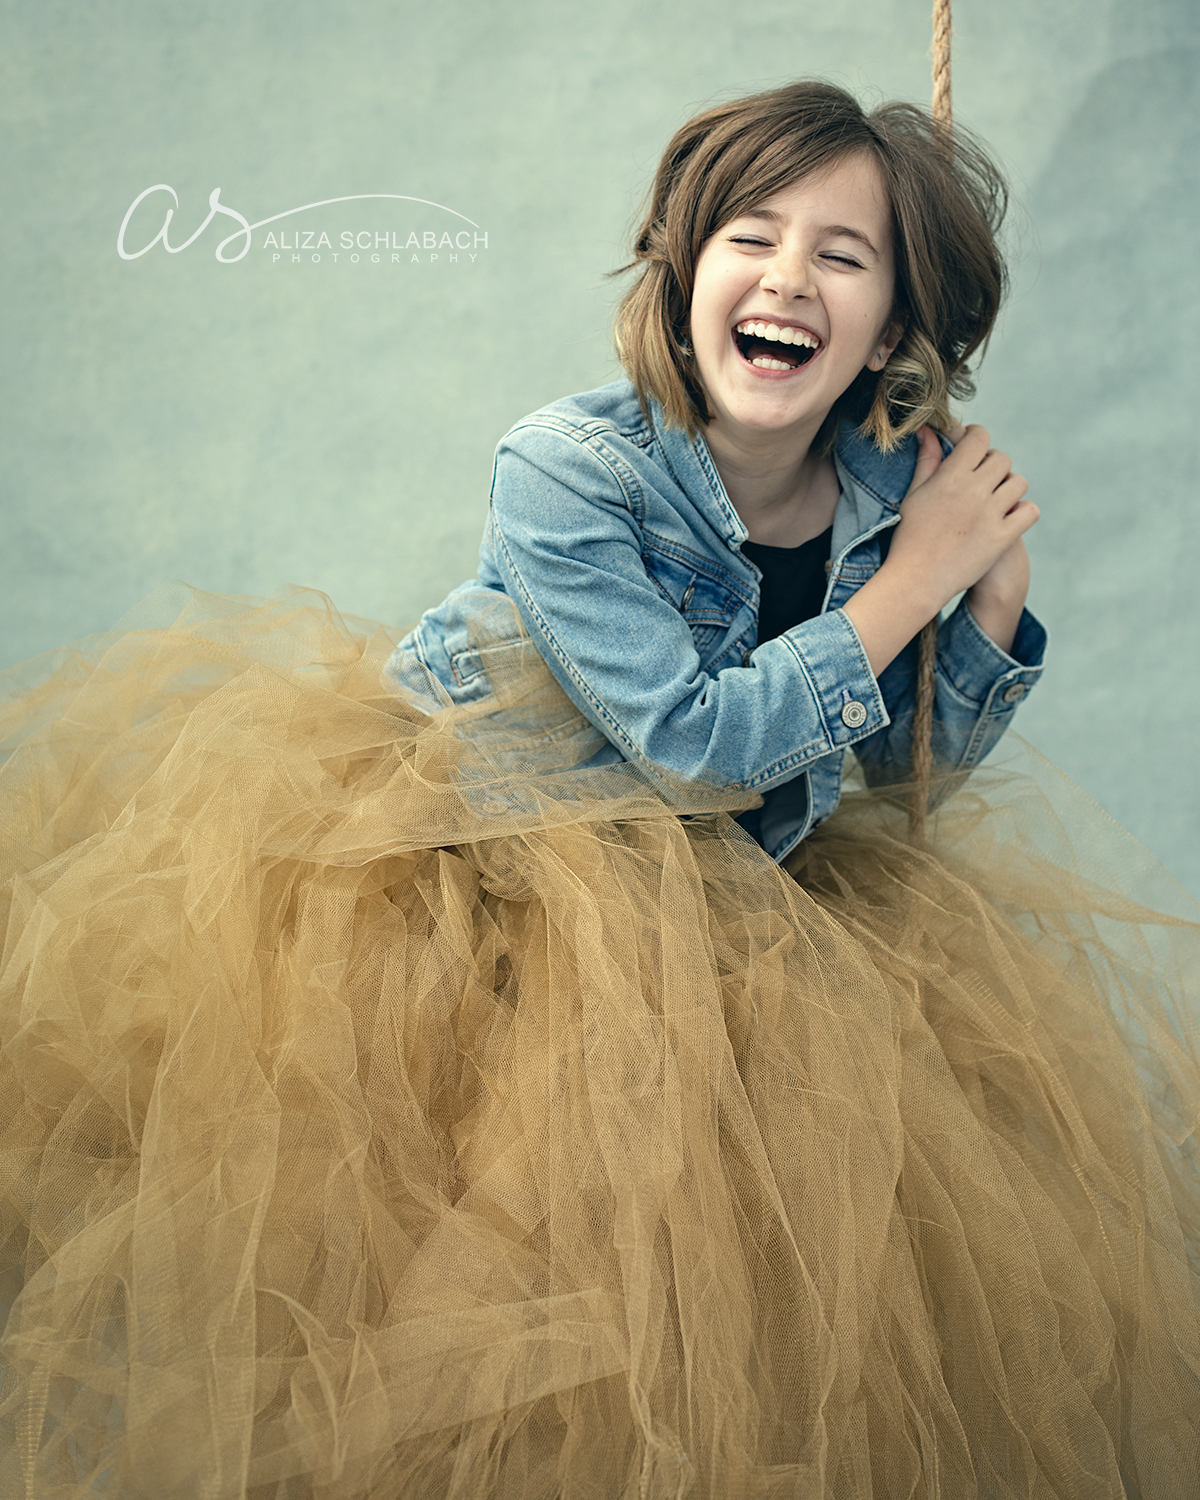 girl in tulle skirt laughing hysterically